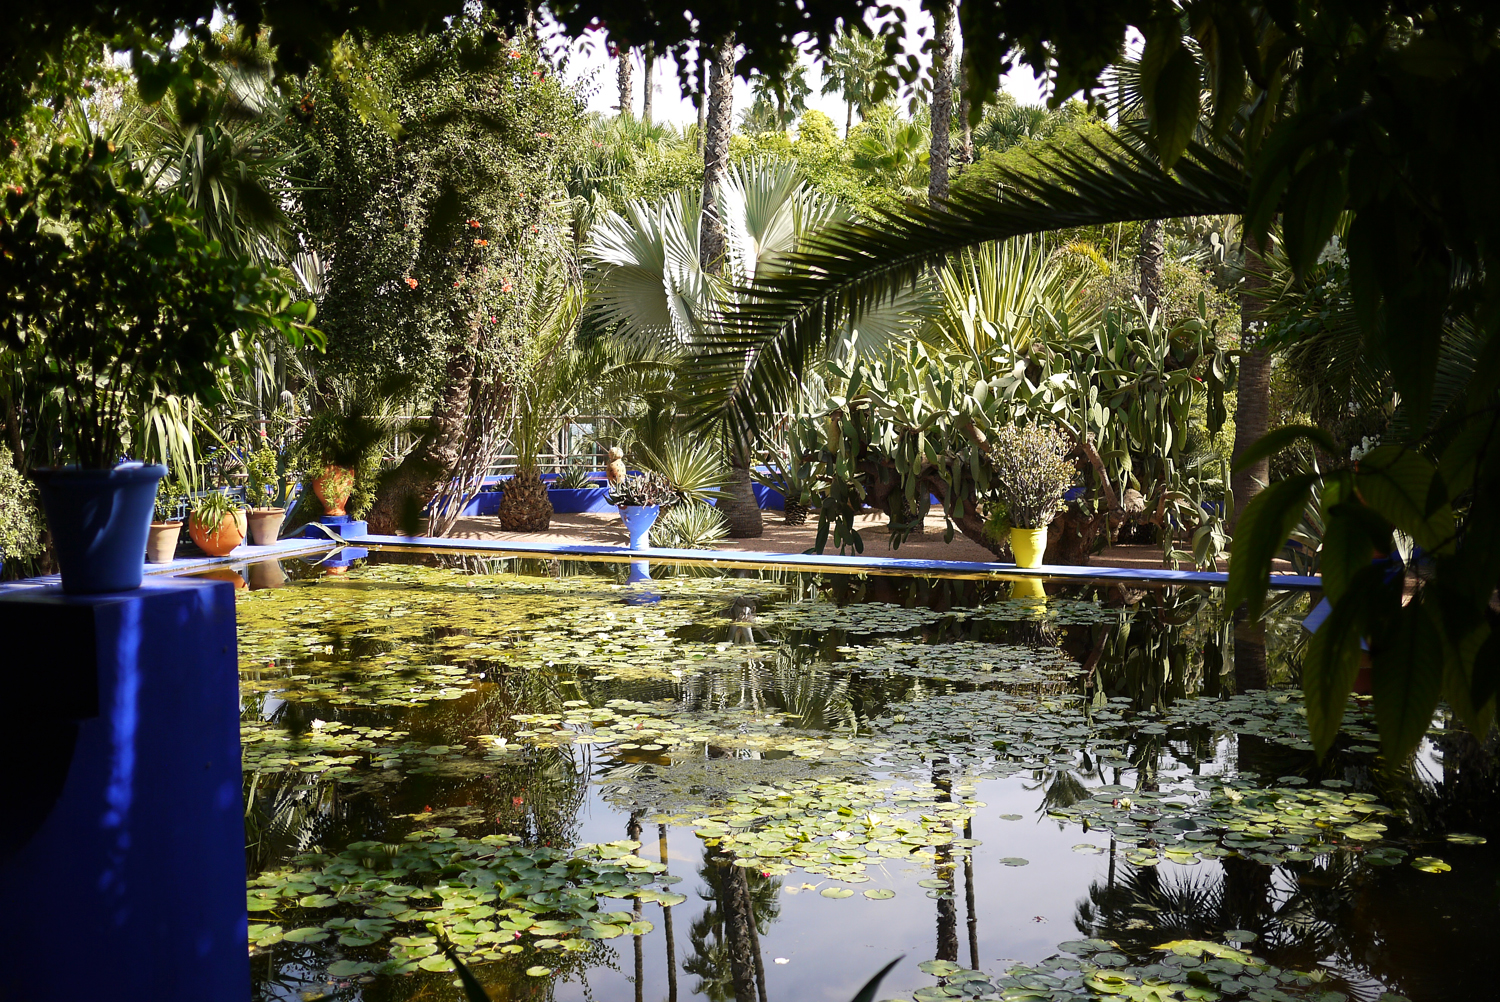 Marjorelle Lily pond